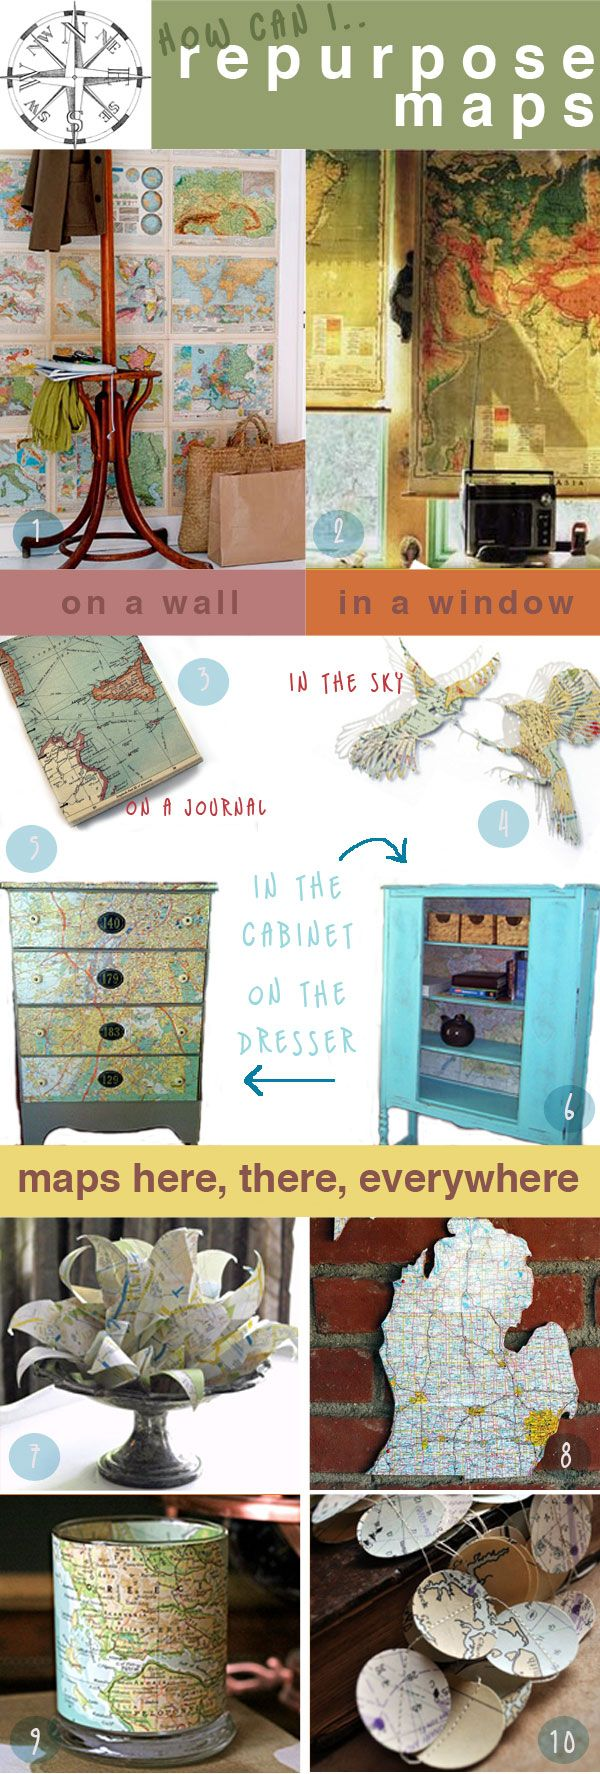 Repurposing (more) Map ideas~ great stuff!: Dressers Drawers, Crafts Ideas, Travel Inspiration Wedding, Old Maps, Crafts Paper Drawers, Globes Crafts, Maps Ideas, Maps Recycled, Crafts Maps